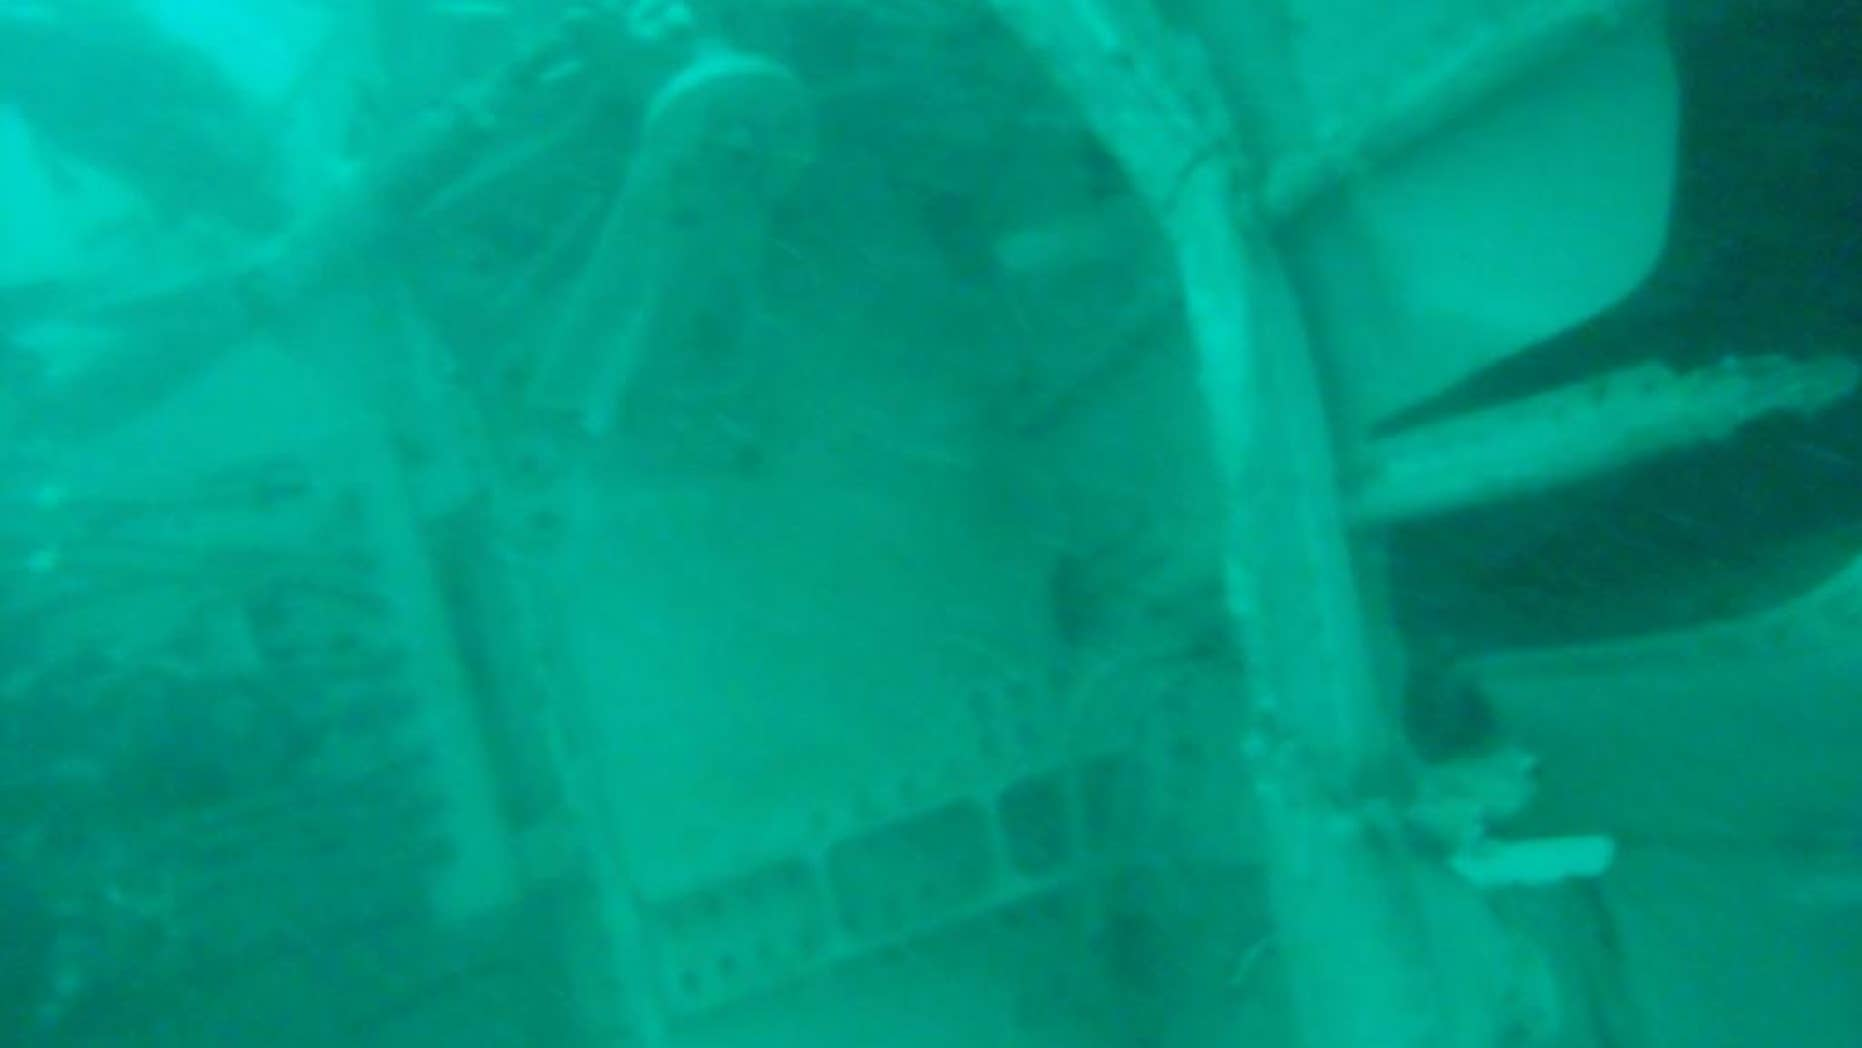 FILE - In this undated underwater file photo released by Indonesia's National Search And Rescue Agency (BASARNAS) on Wednesday, Jan. 7, 2015, the part of the wreckage that BASARNAS identified as of the ill-fated AirAsia Flight 8501, is seen in the waters of the Java Sea, Indonesia. The second attempt to lift the fuselage of the crashed AirAsia jetliner failed Sunday, Jan. 25, 2015 as the wreckage sank back to the ocean floor when a rope linking the lifting balloons broke. Navy spokesman Manahan Simorangkir said strong current was the main obstacle. The rope had been fastened and linked to a ship, but broke again as the fuselage was lifted. (AP Photo/BASARNAS, File)